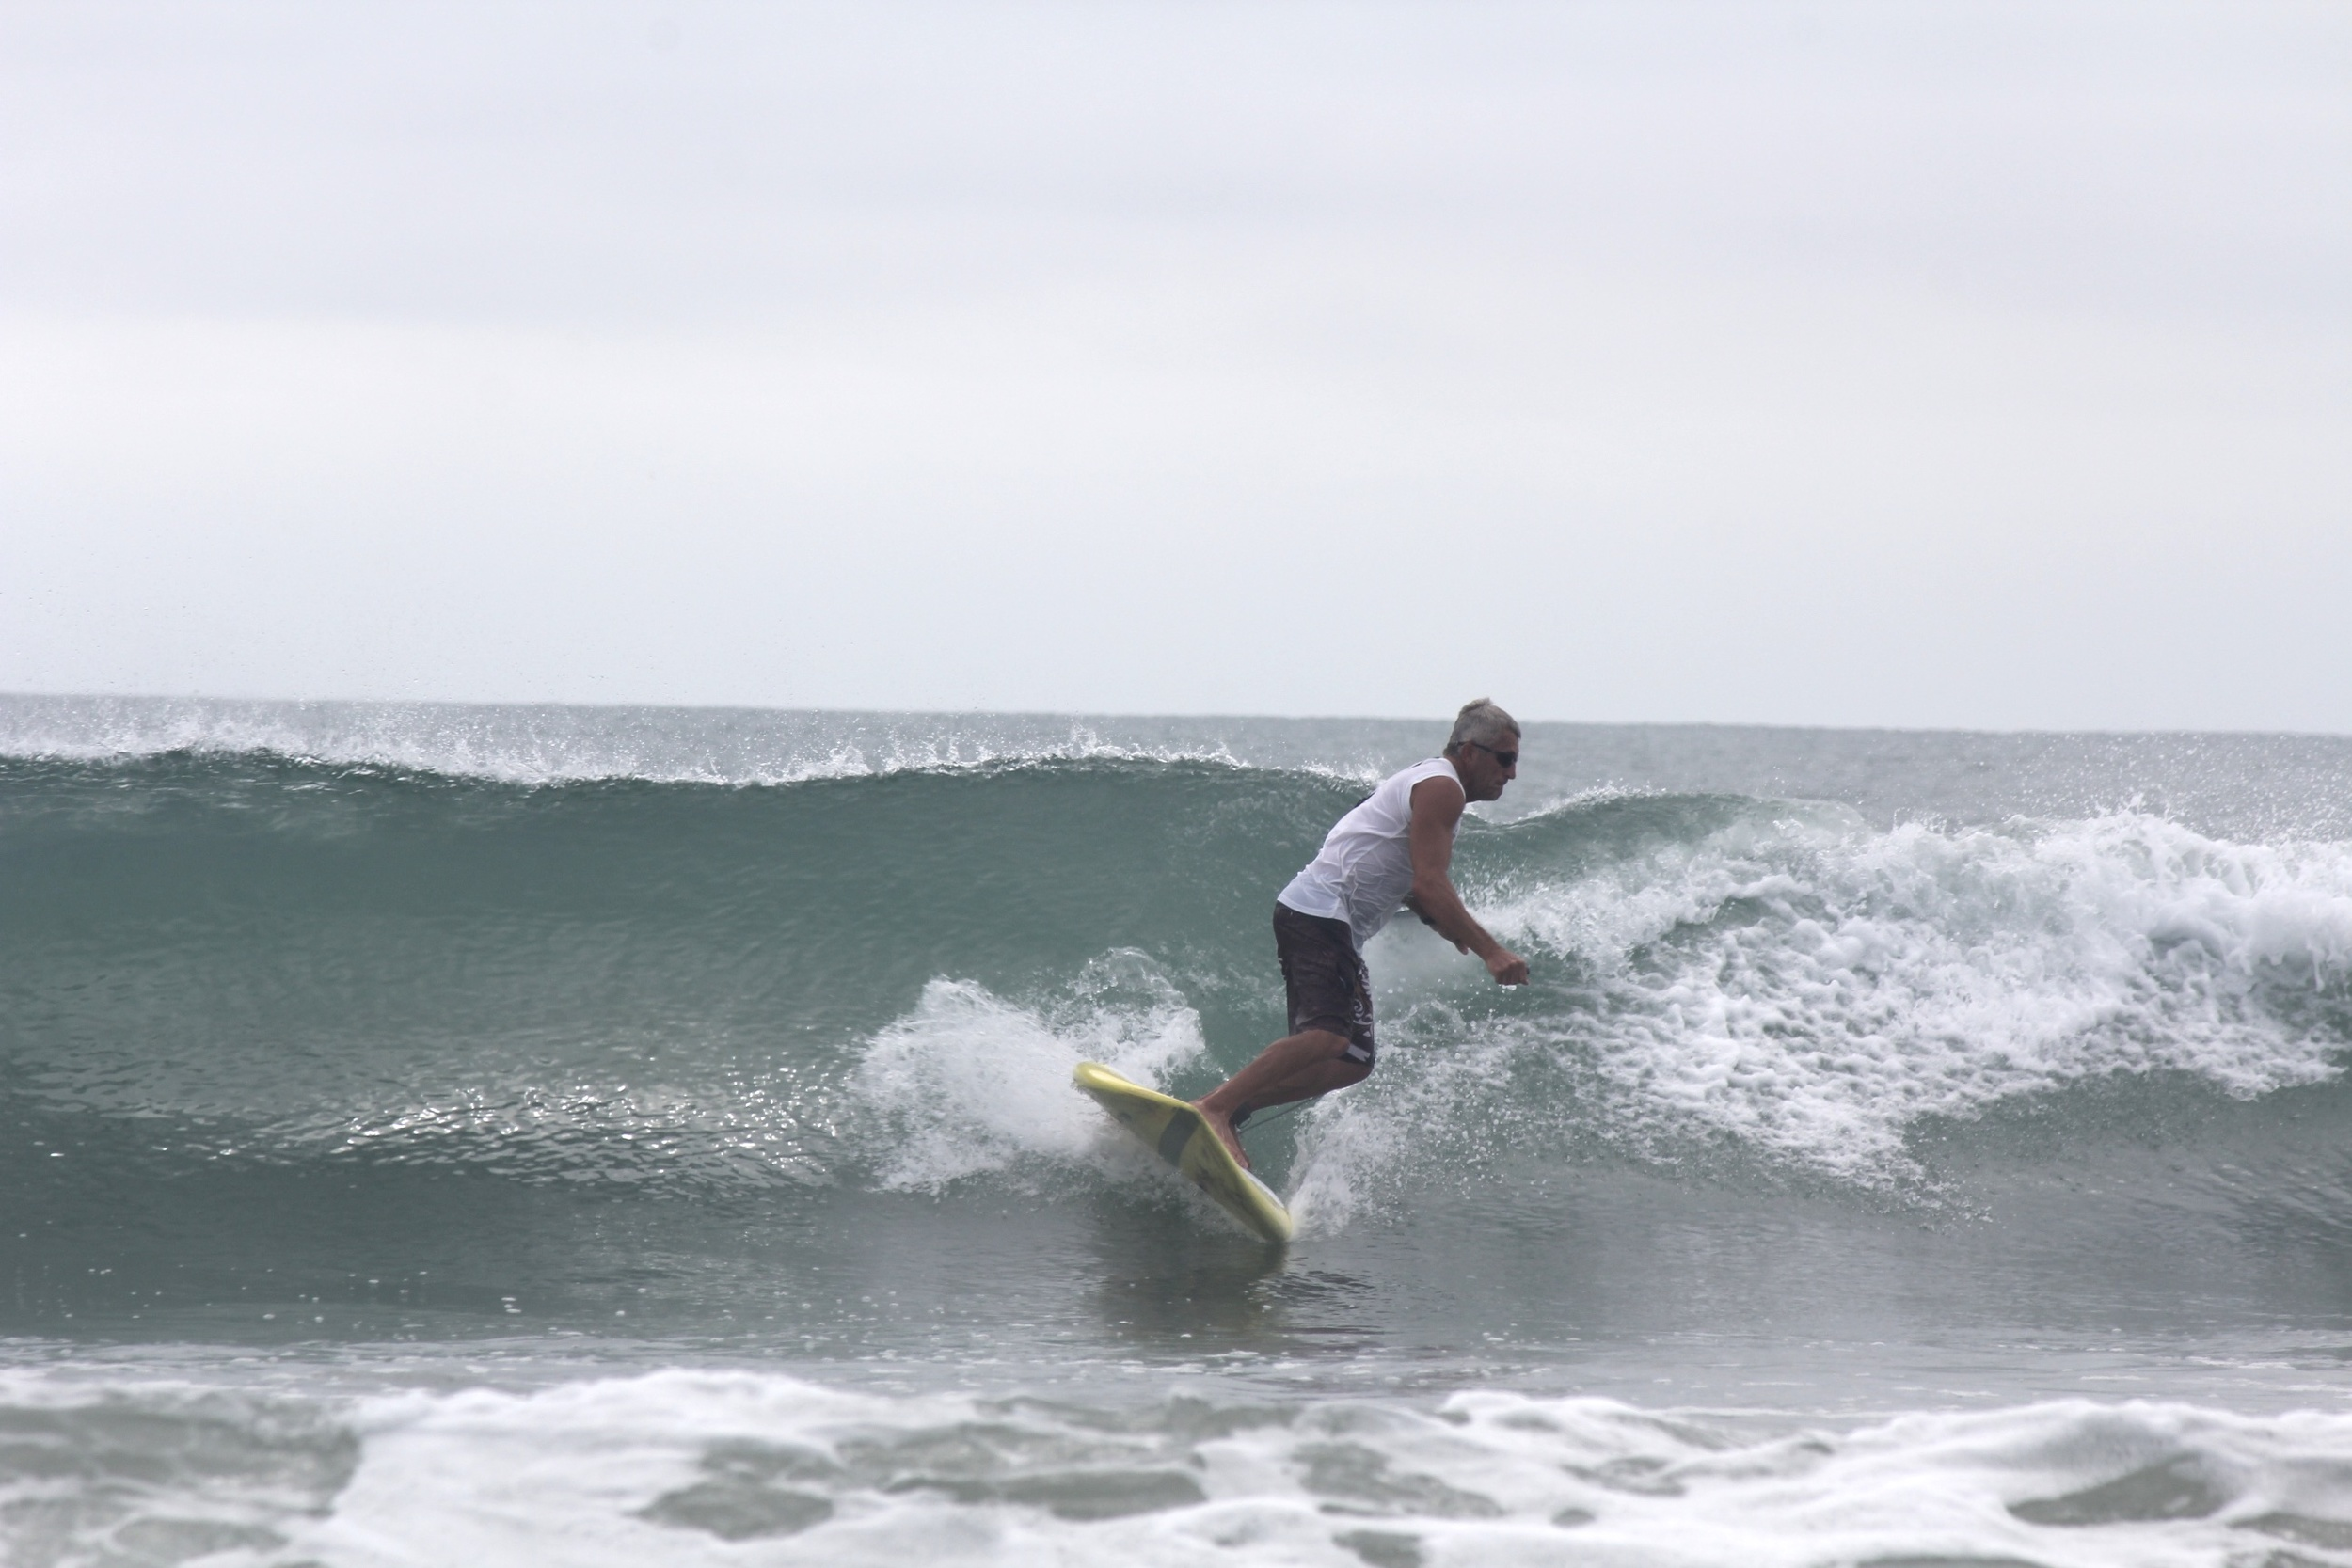 Steve on his 7'8 Accelerator with Speed Rail